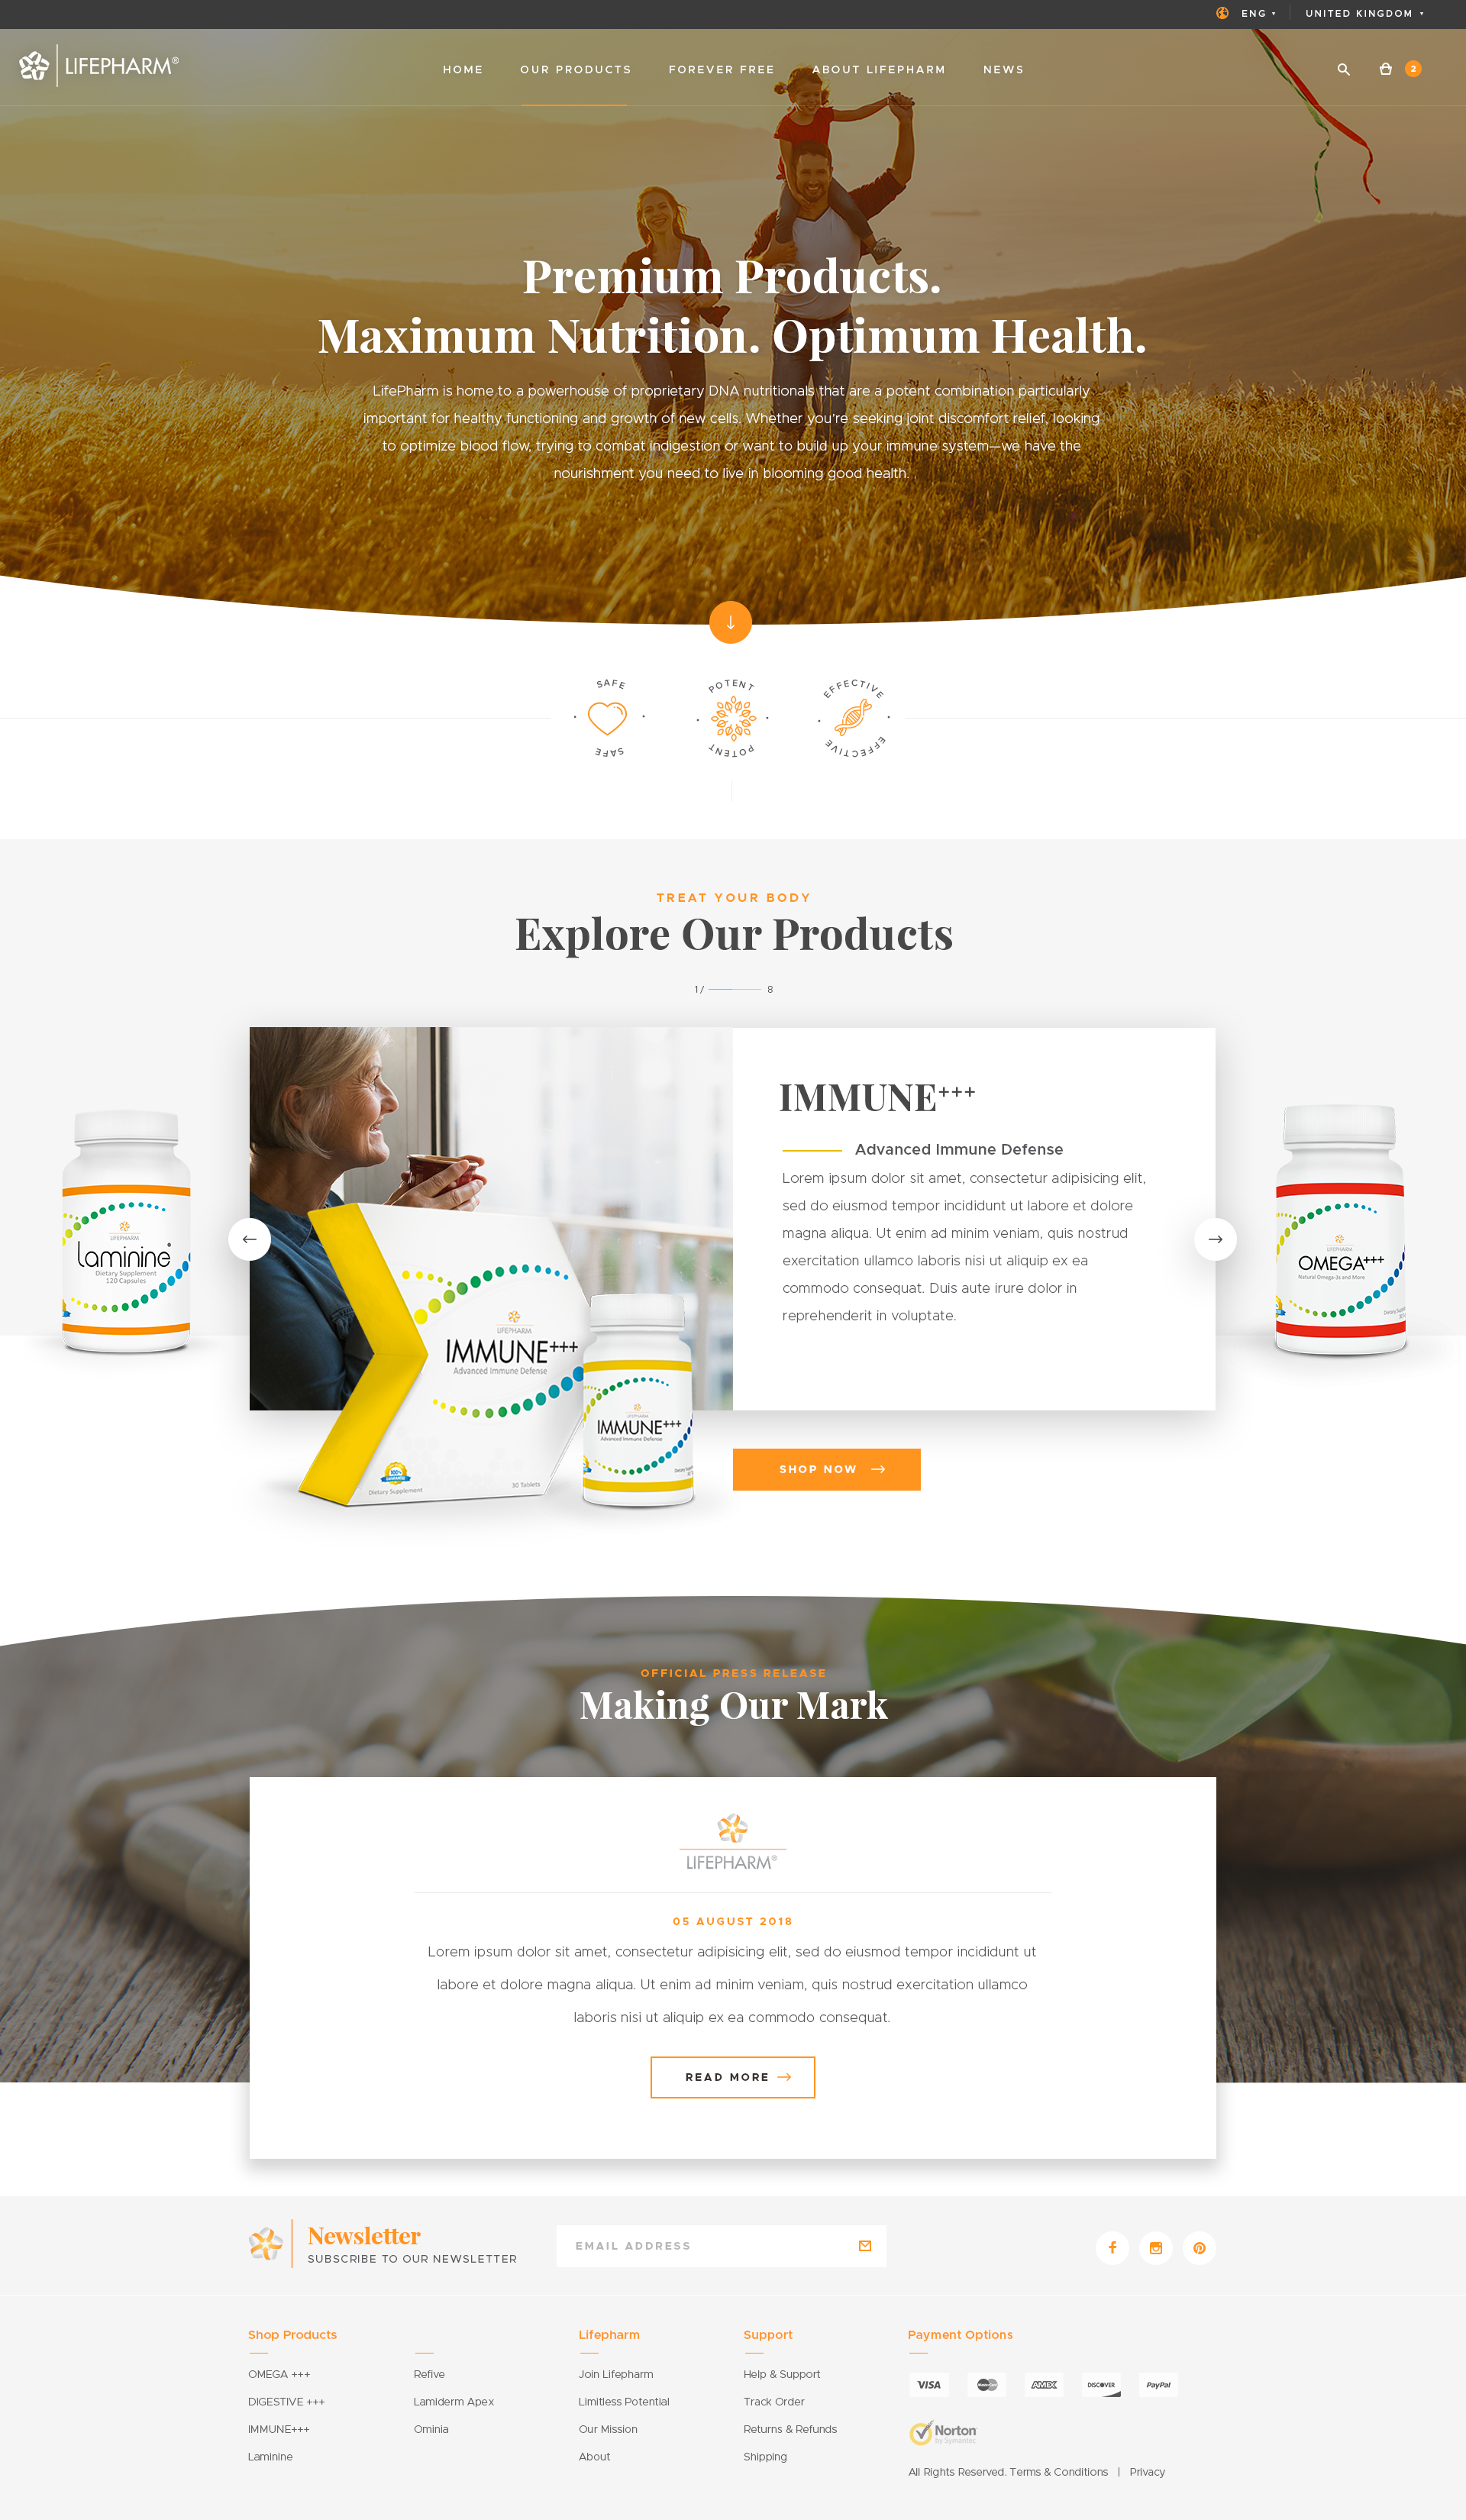 Designing the Remaining Pages for Lifepharm.com